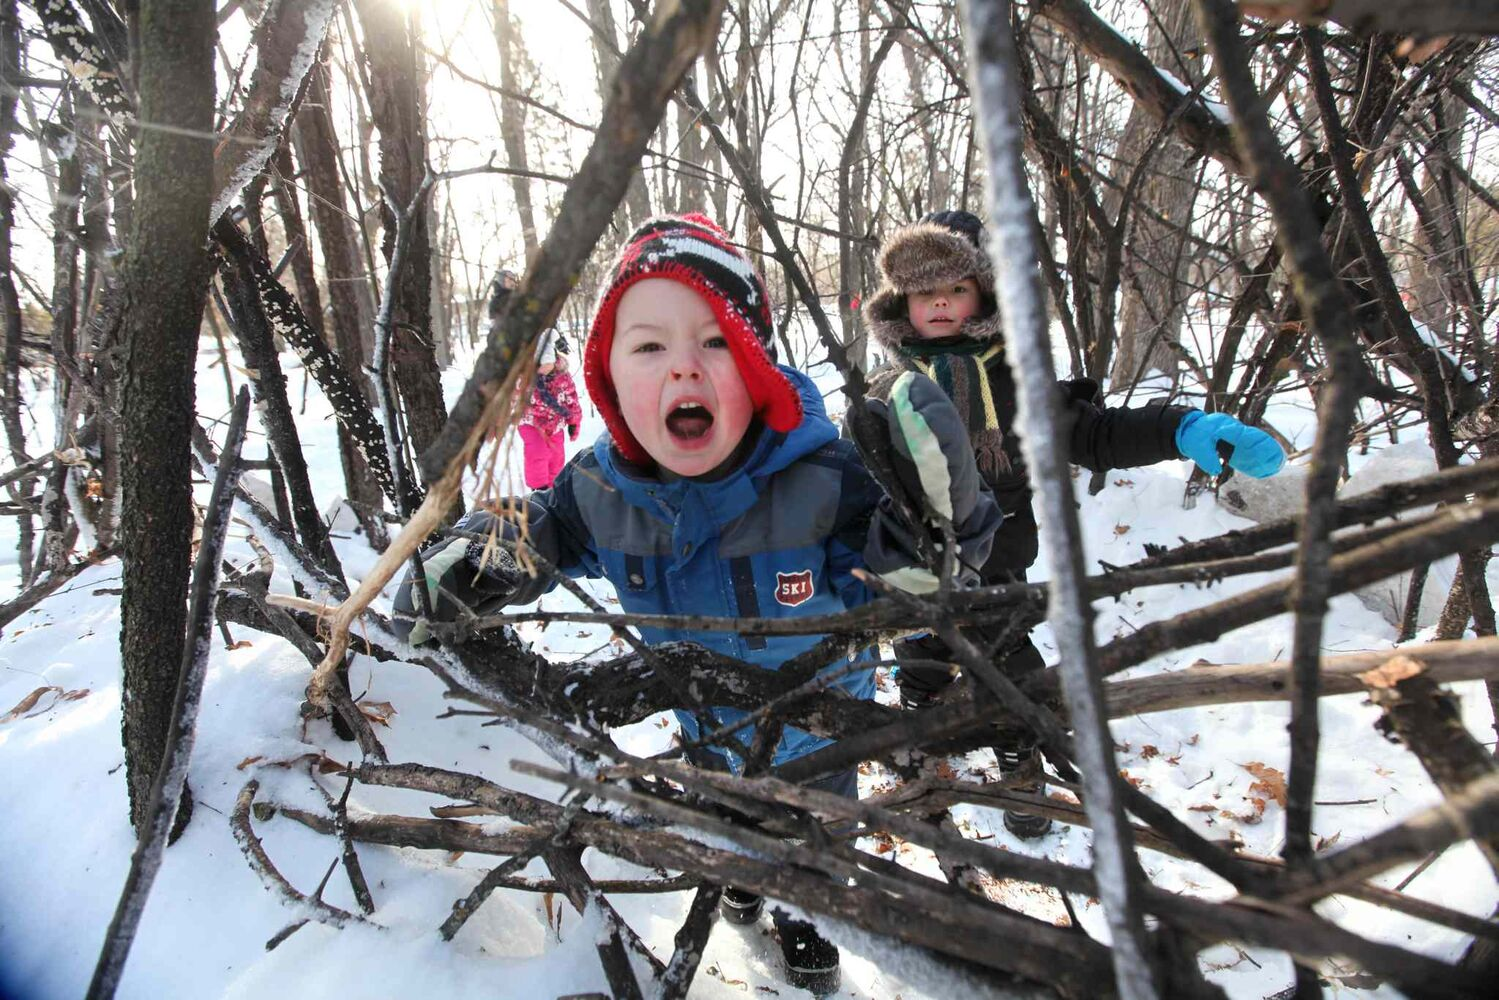 Owen Edmonds, 5, growls as he pretends to be a bear while playing with Jessie Reid, 5, and his sister, Alice Edmonds, 3, in a pretend cage made of sticks in the woods at Assiniboine Park Saturday morning. The structures were made by children and childcare workers in an early childhood education program as part of a initiative to get kids playing outside creating things with nature.